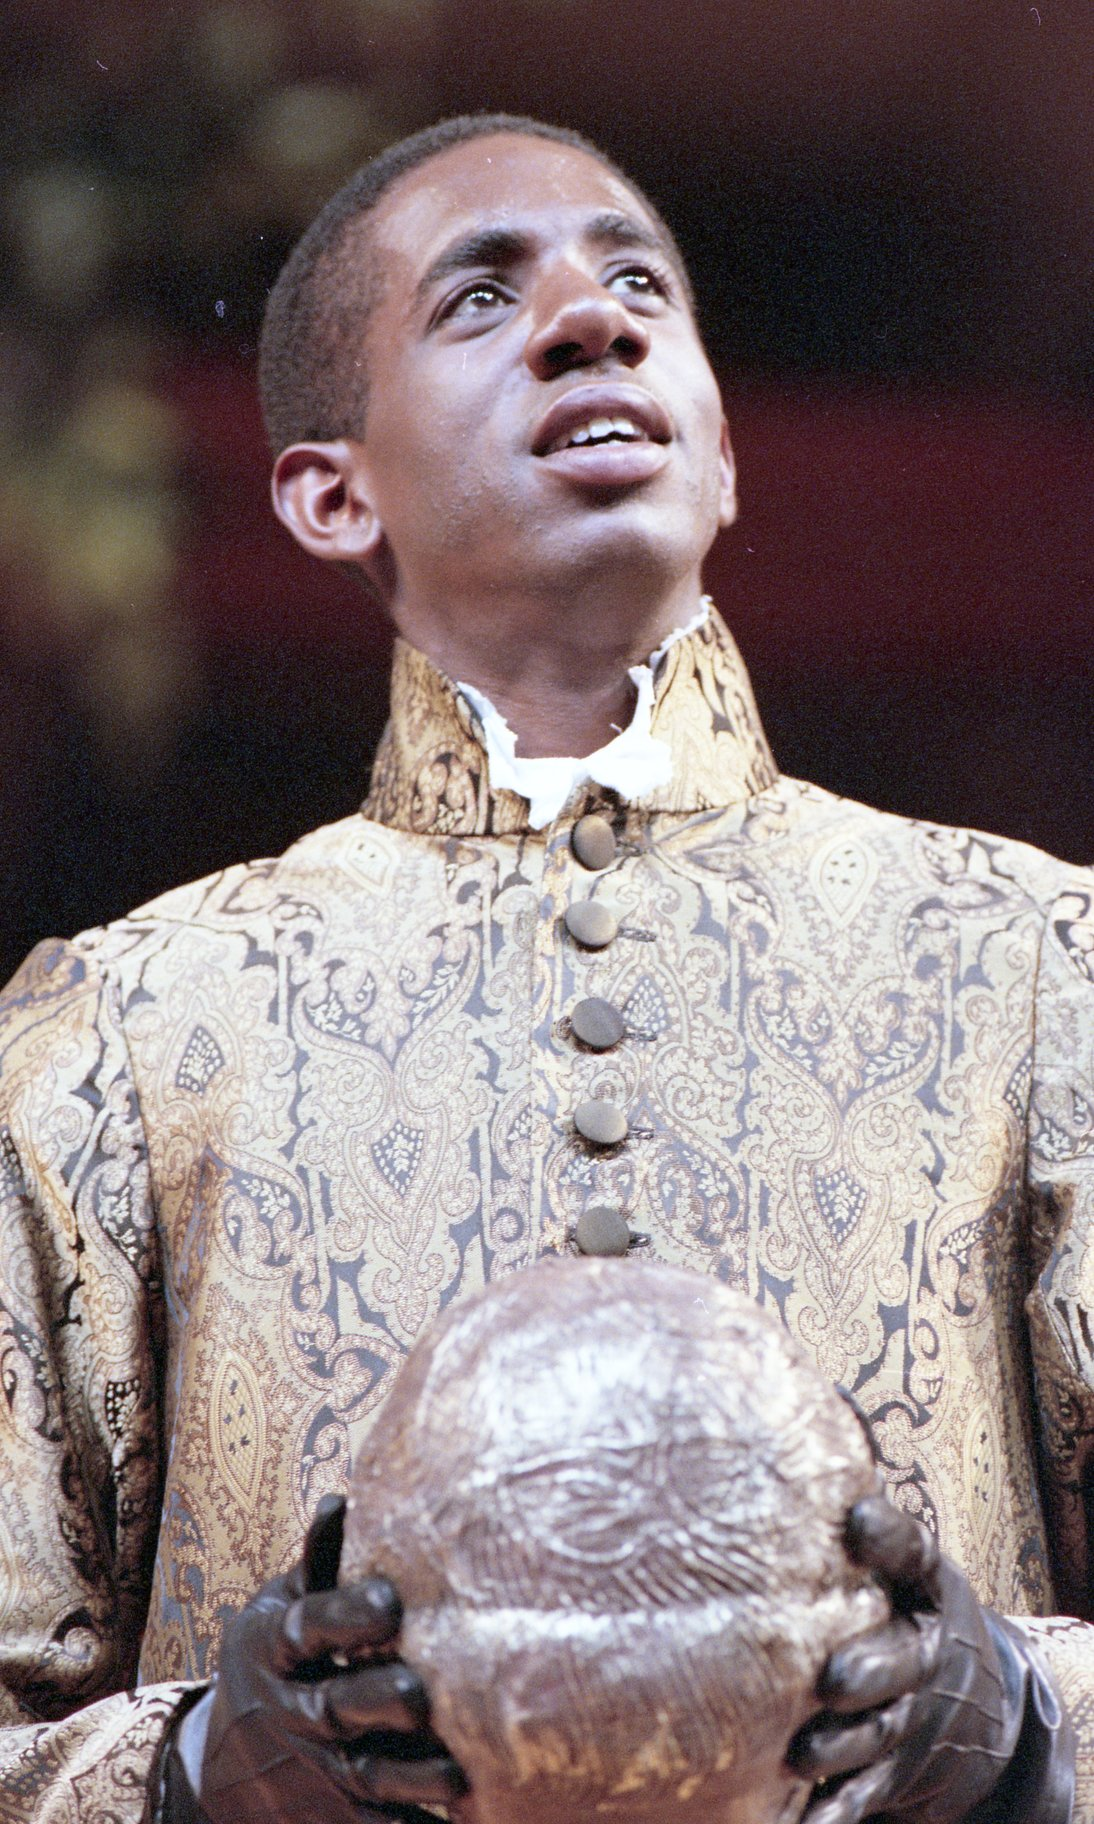 Rhashan Stone as Claudio at the masked ball.